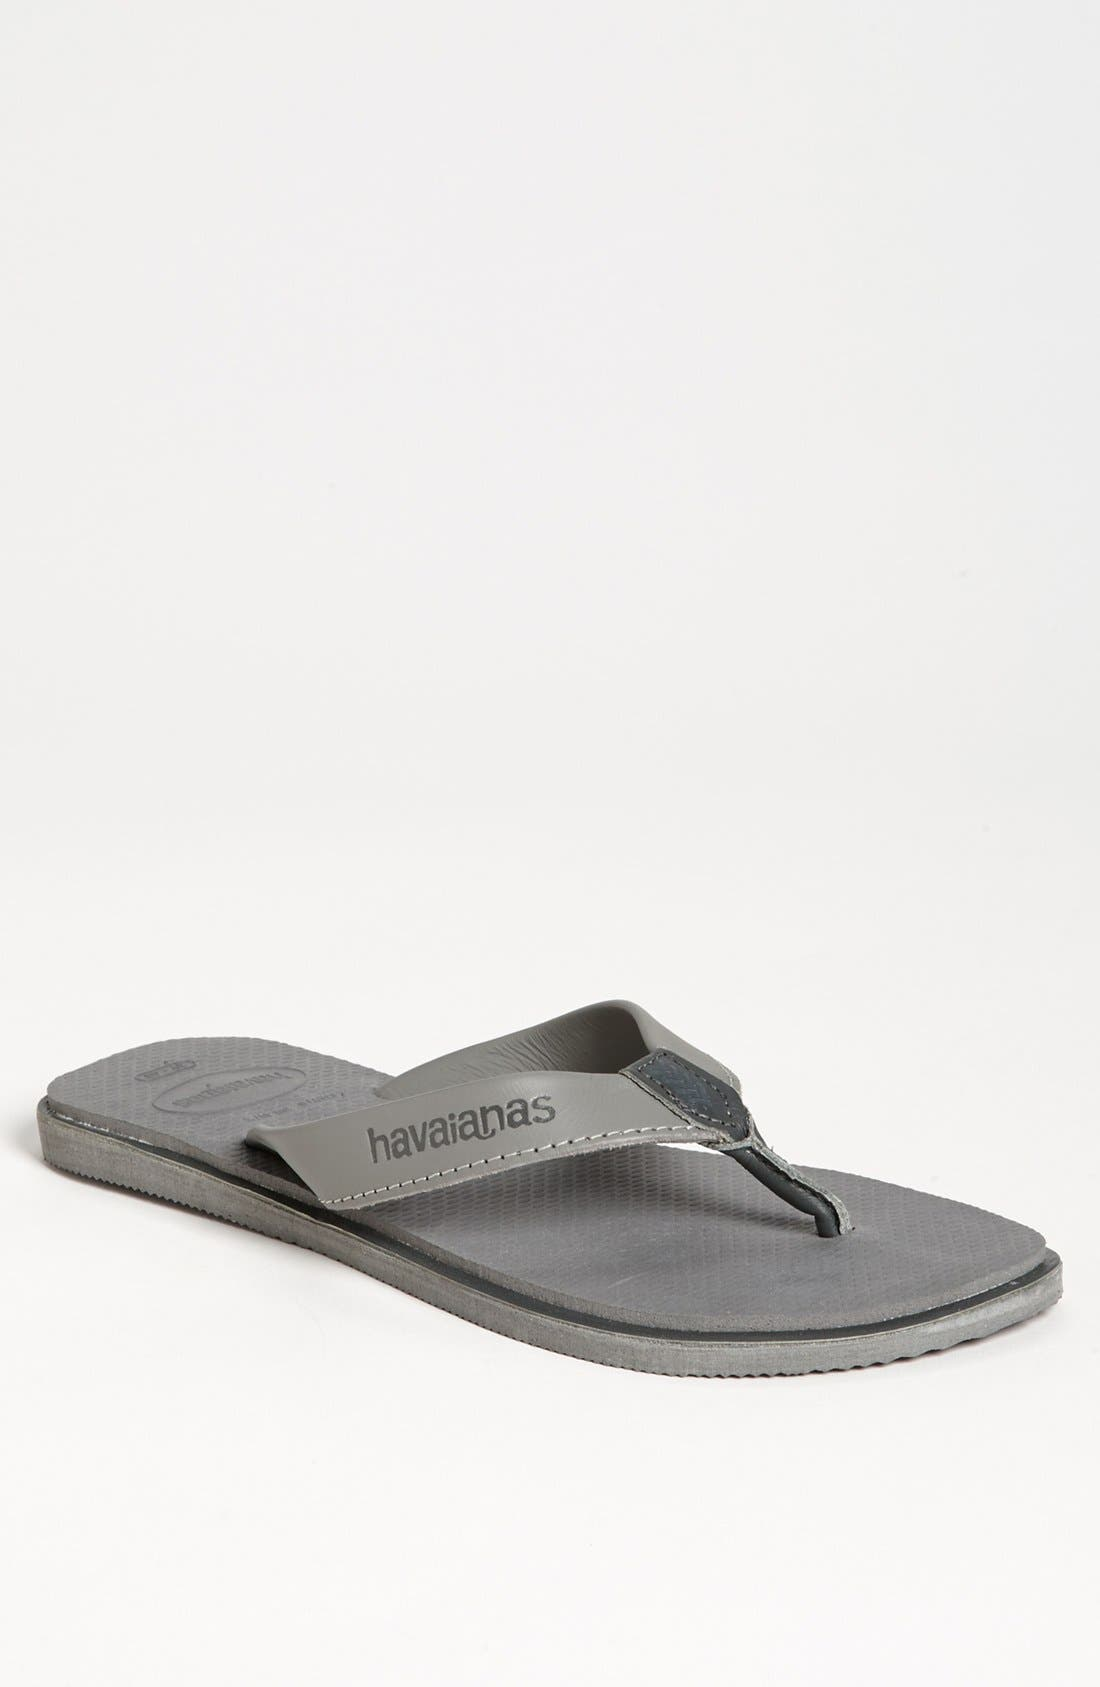 Main Image - Havianas 'Urban Premium' Flip Flop (Men)